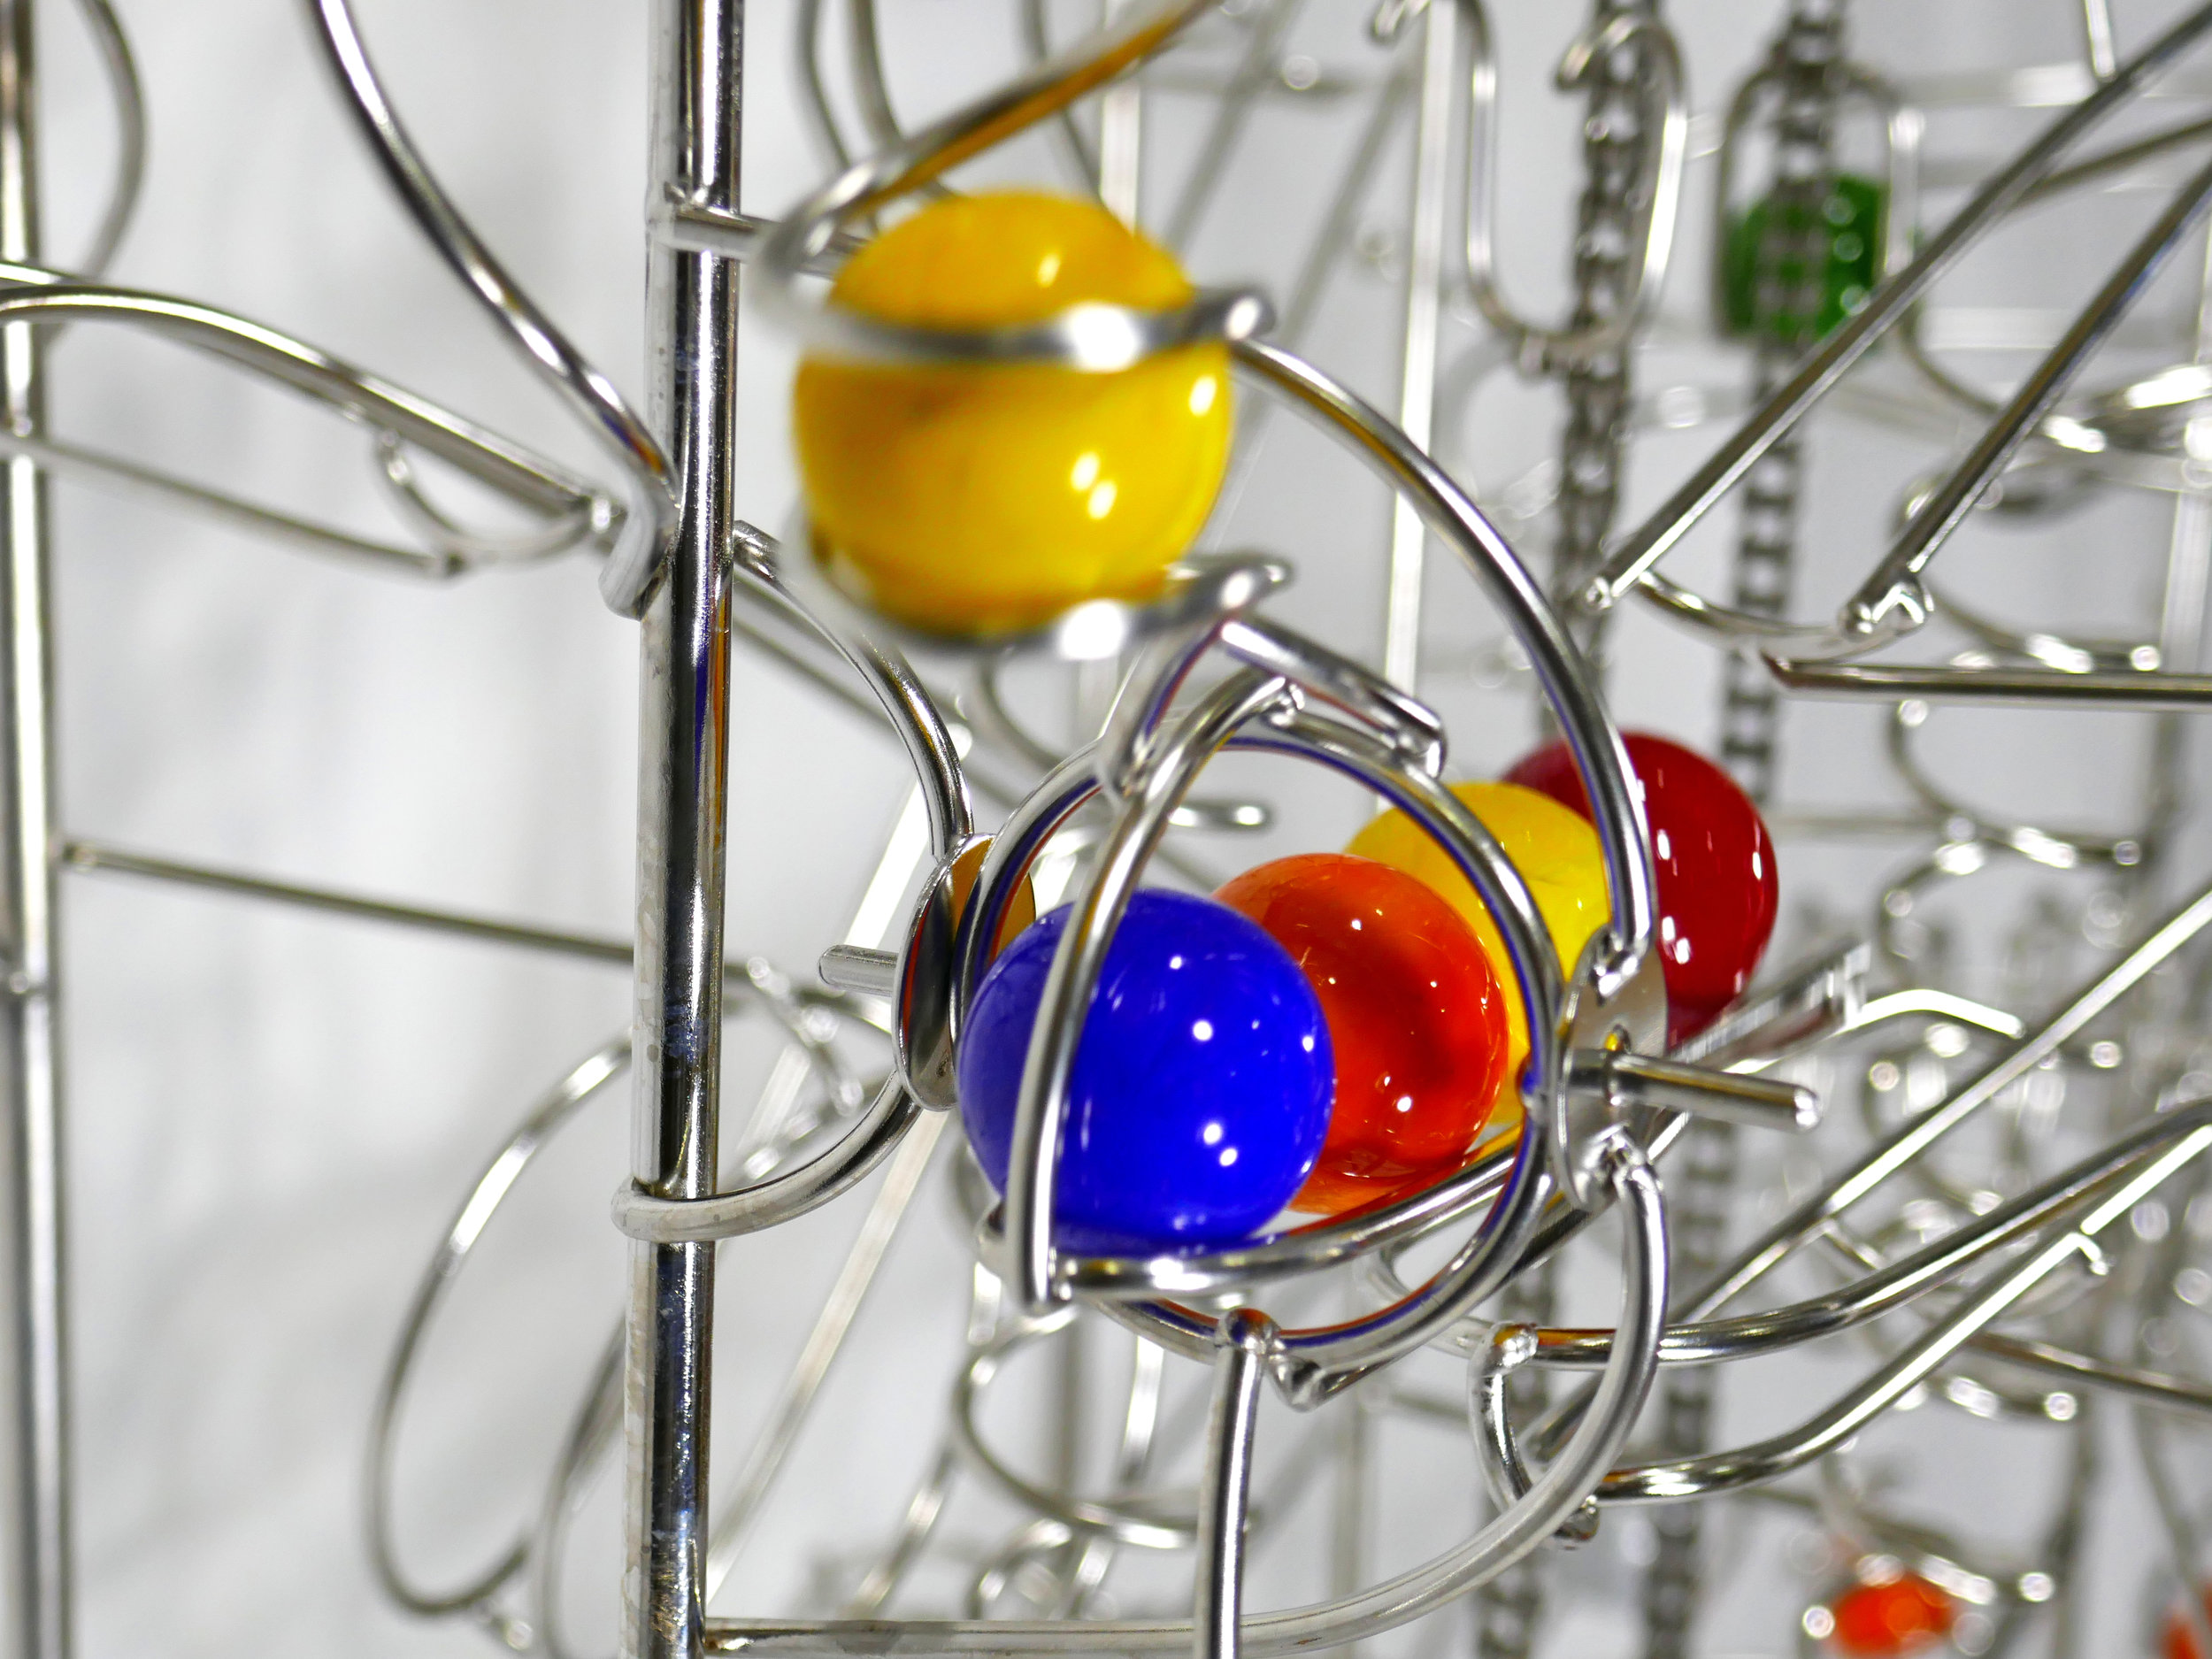 Rolling ball marble run sculptures - close up of ball drop kinetic element - Stephen Jendro